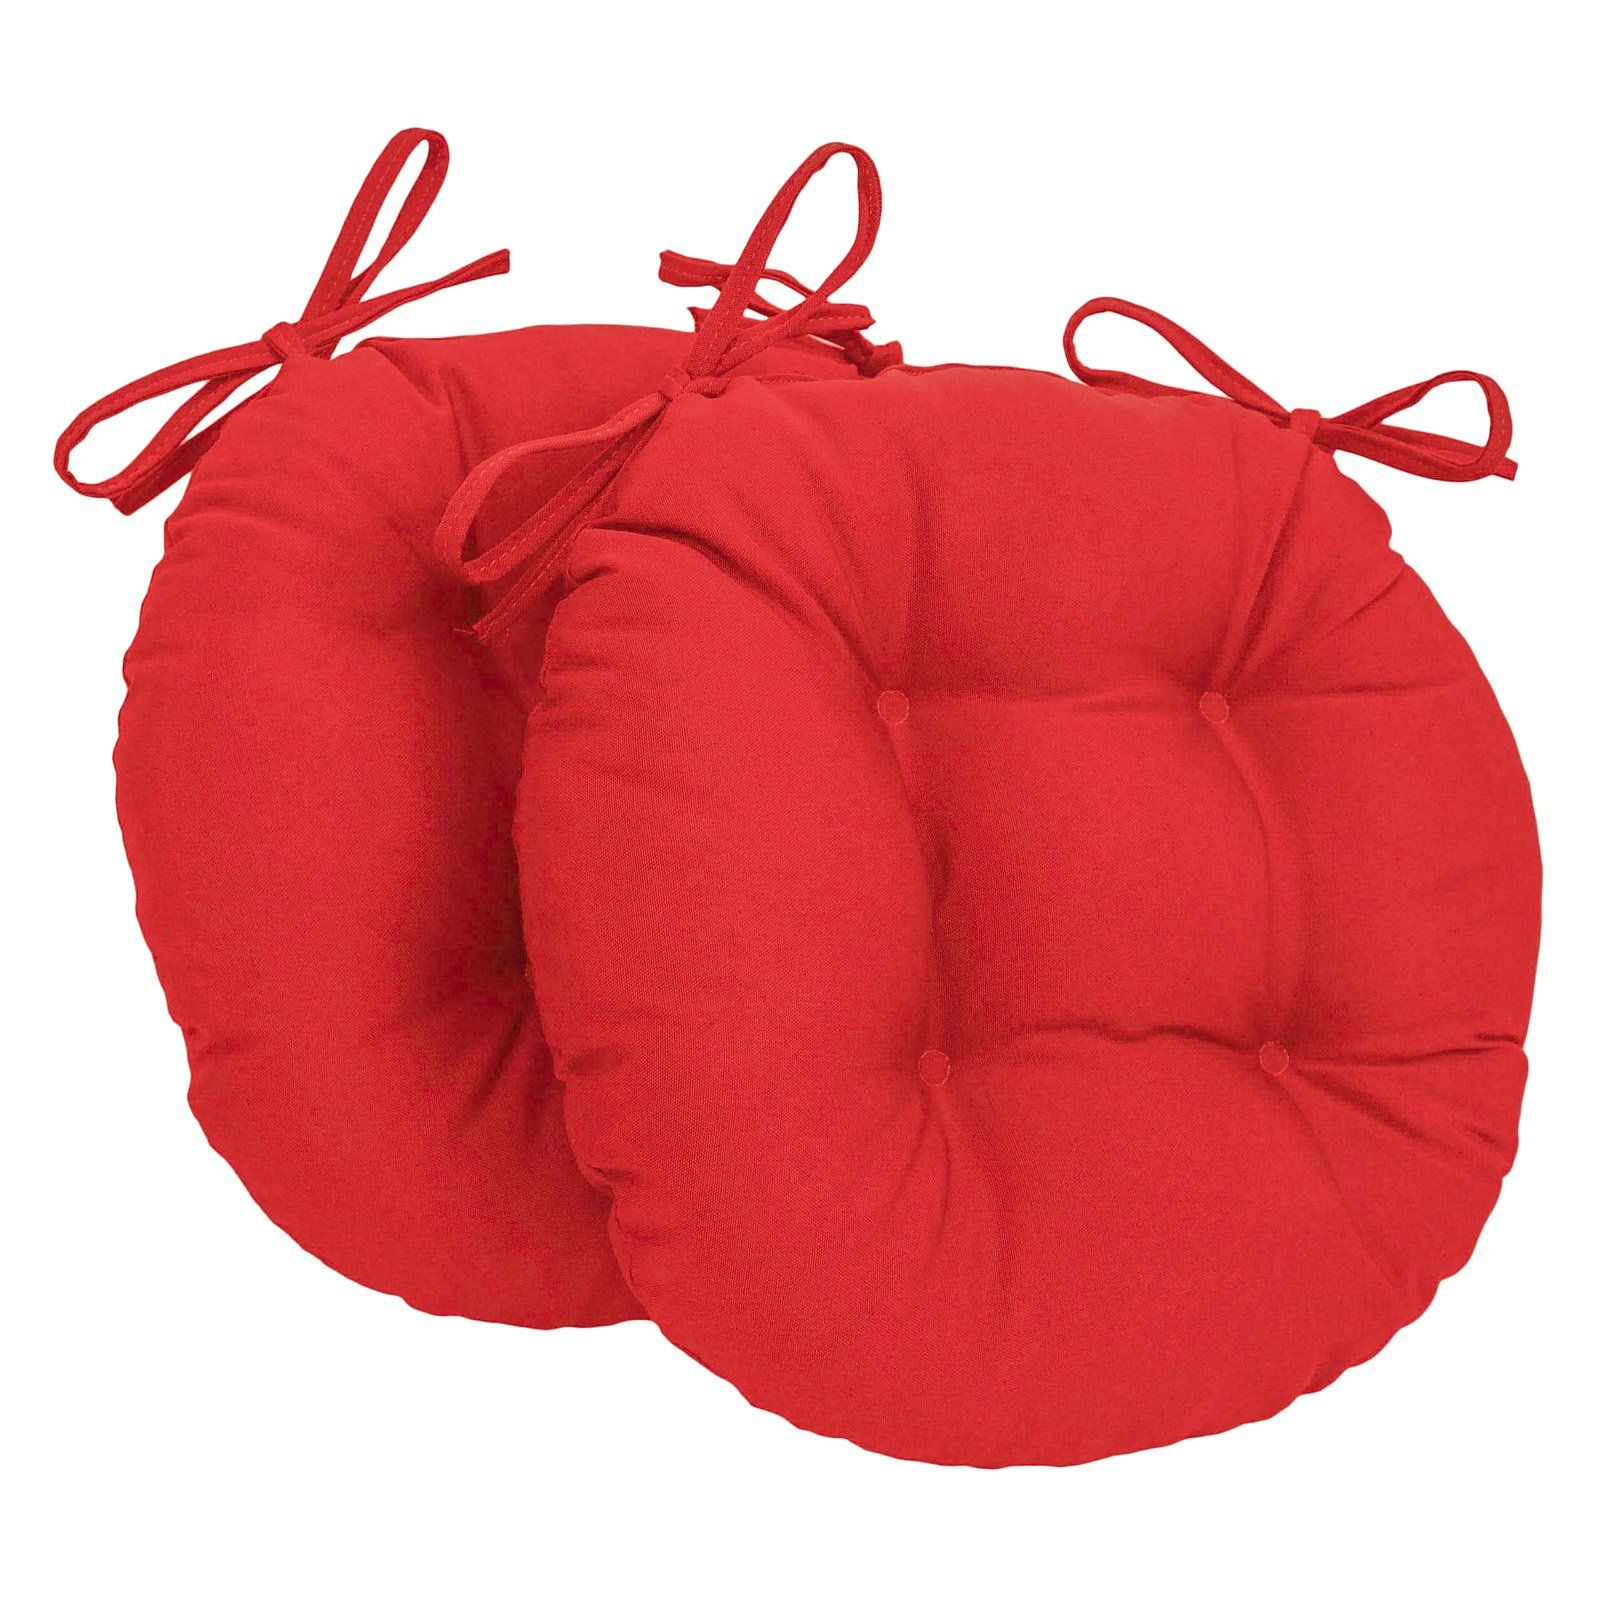 Rave Red Bistro Chair Pad 16 Round Cushion With Ties Indoor Outdoor Chair Pads Bistro Chairs Outdoor Dining Chair Cushions